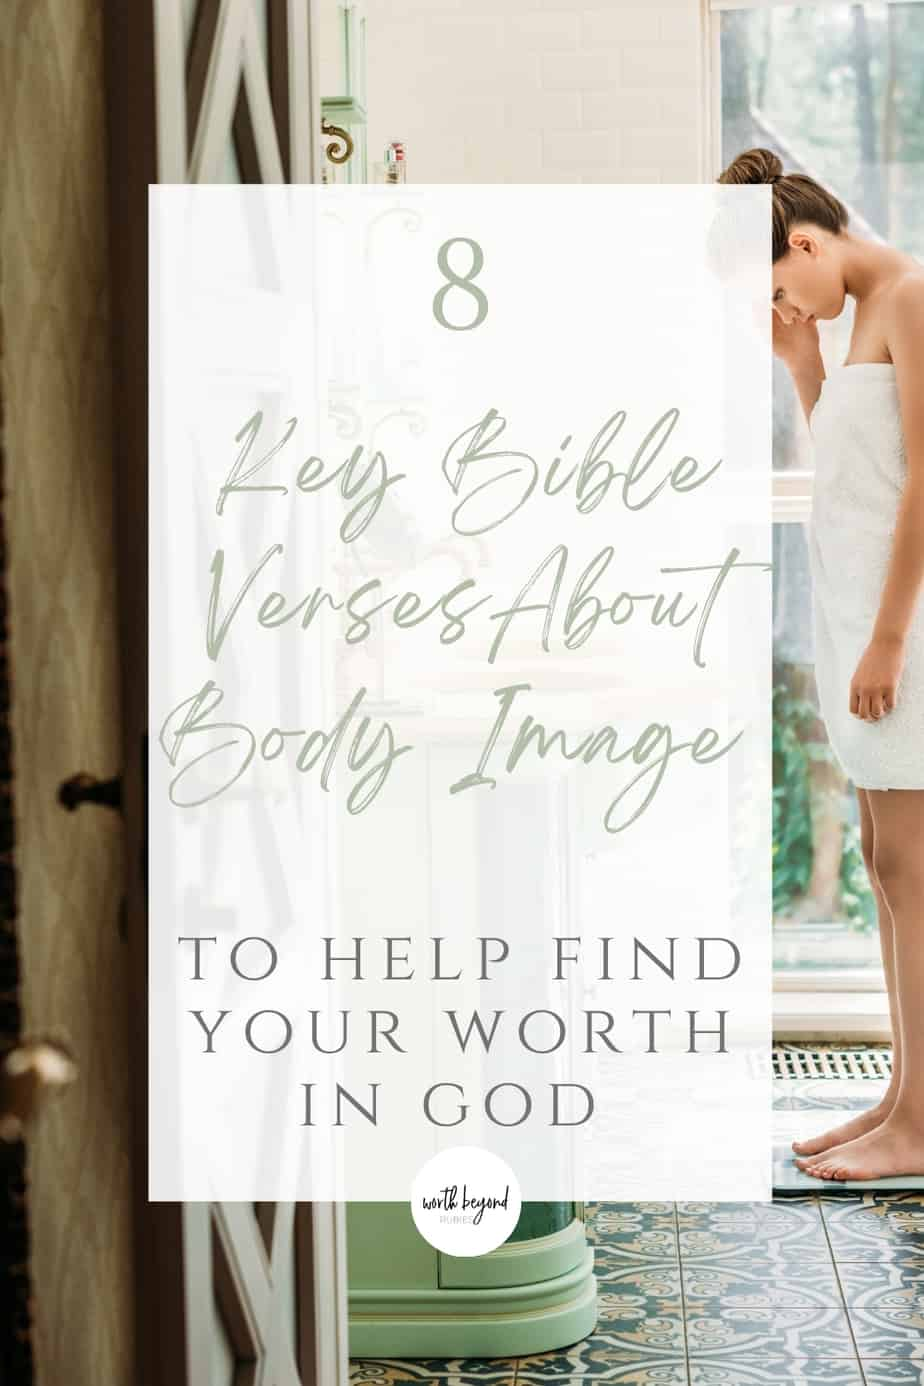 a woman in a bathroom standing on a scale and text that says 8 Key Bible Verses About Body Image  to Help Find Your Worth in God